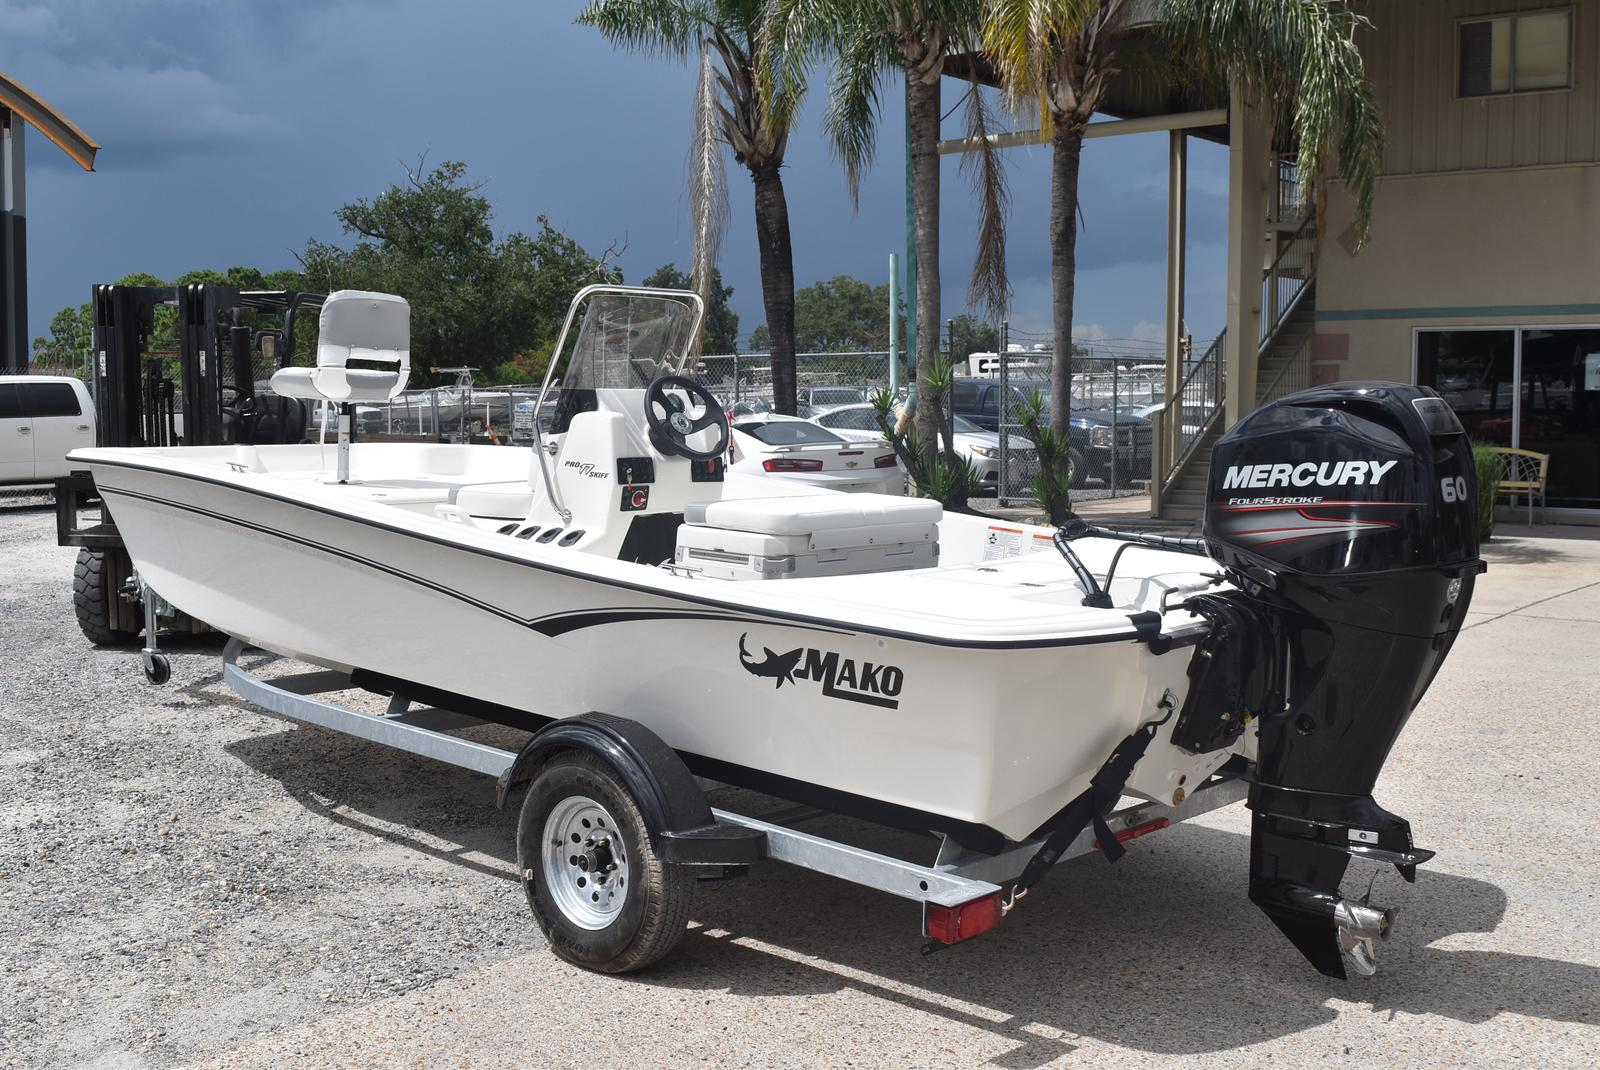 2020 Mako boat for sale, model of the boat is Pro Skiff 17, 75 ELPT & Image # 222 of 702